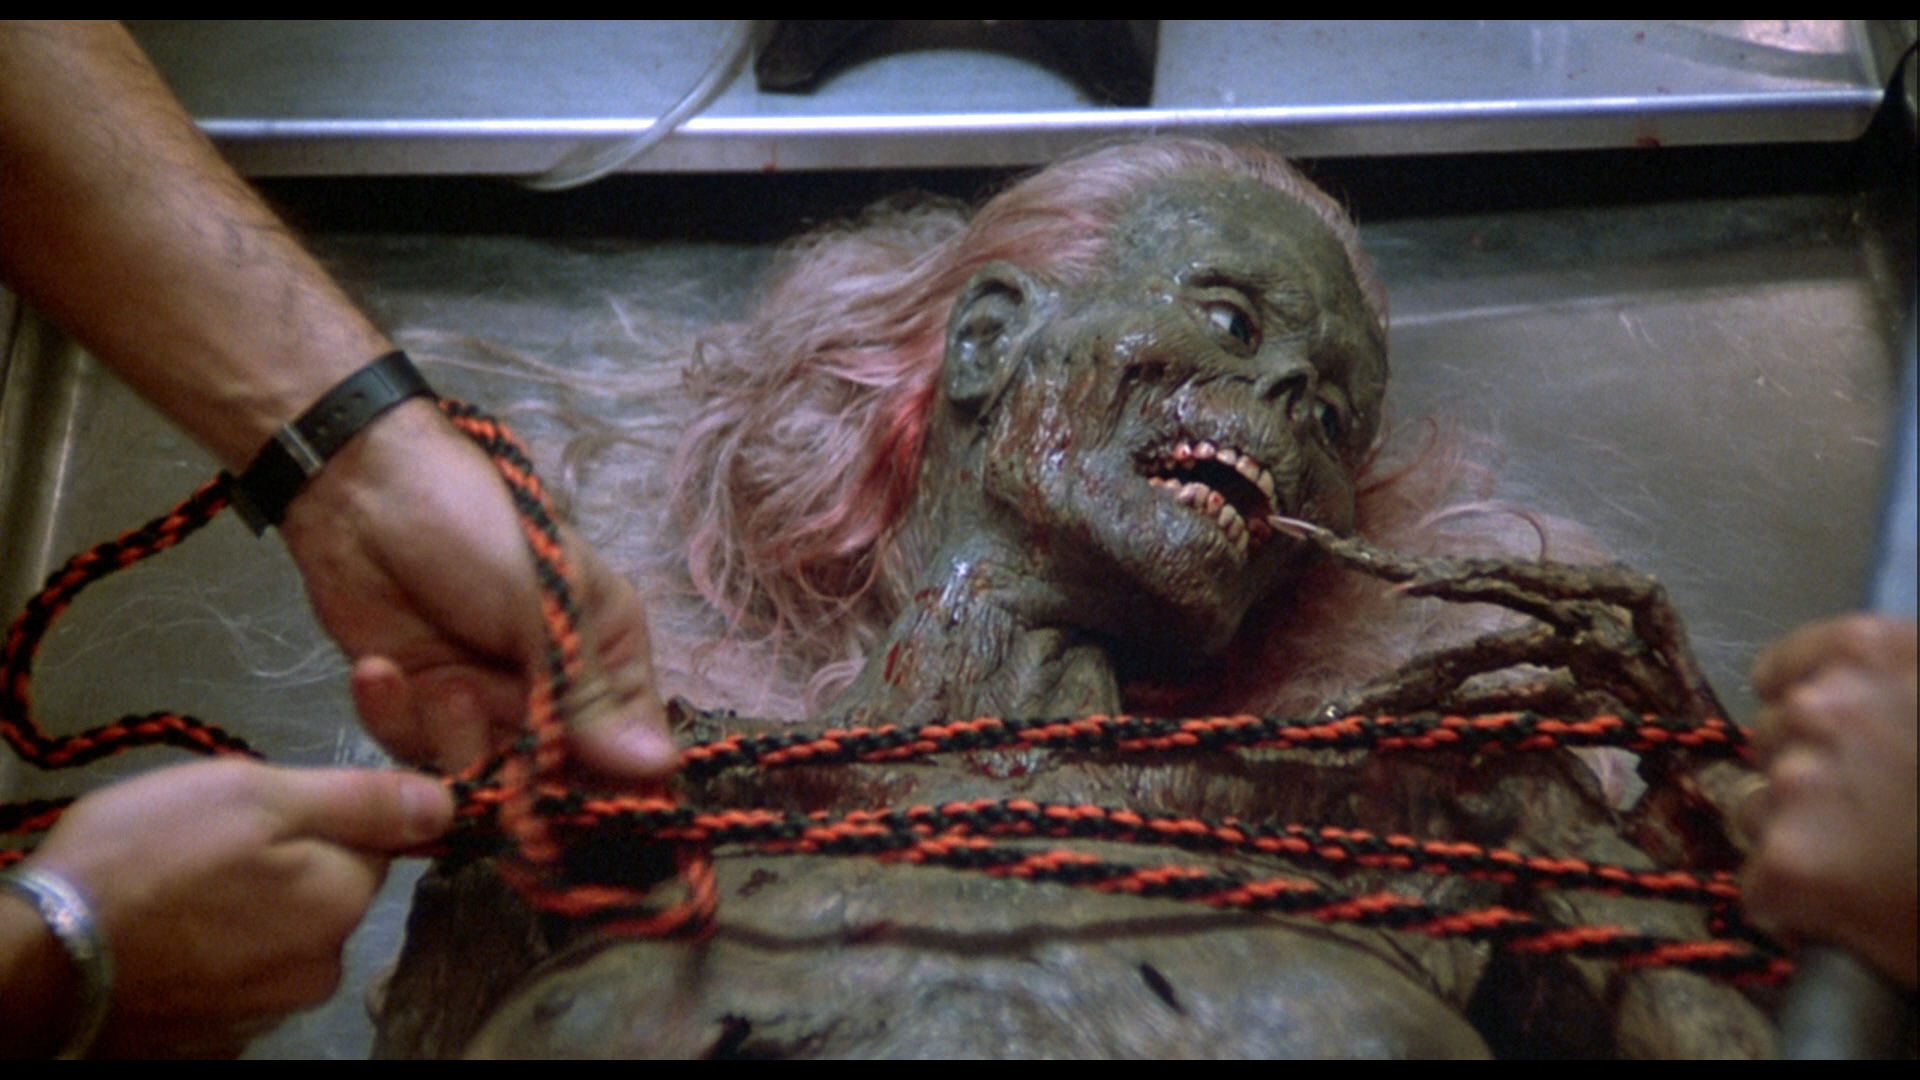 3. Return of the Living Dead - Table Zombie